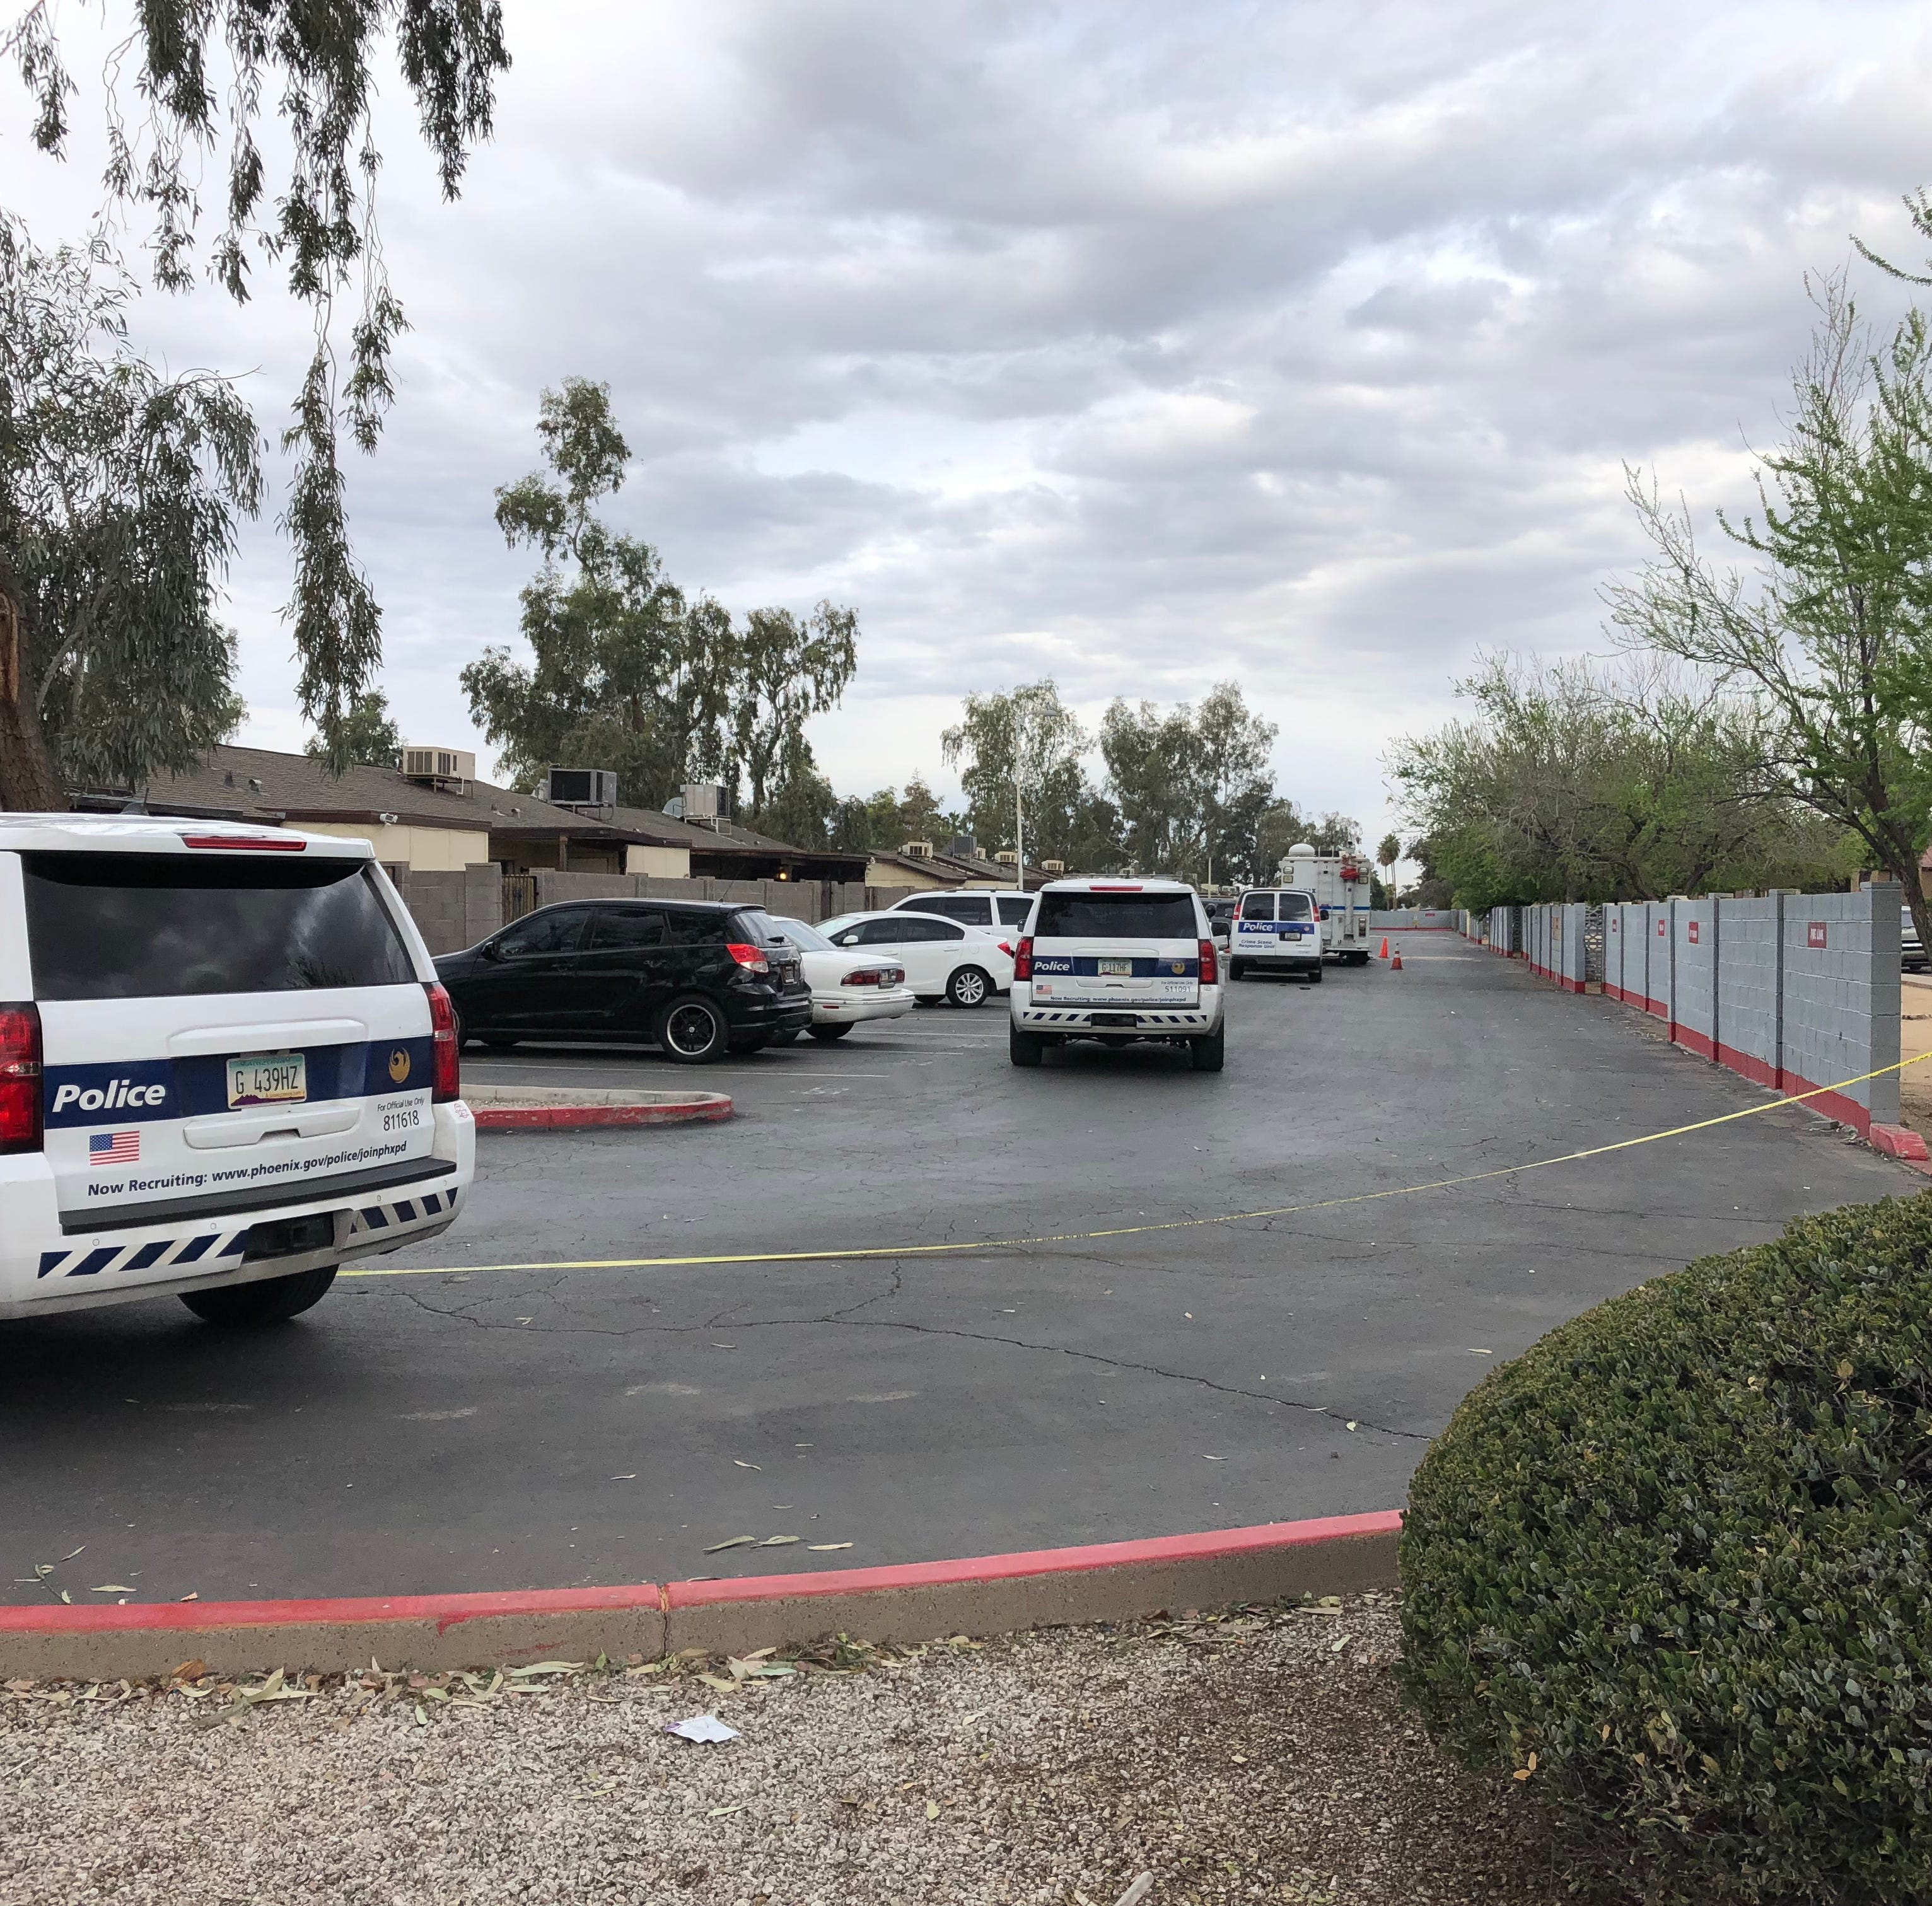 4 dead, suspect in custody after Phoenix shootings